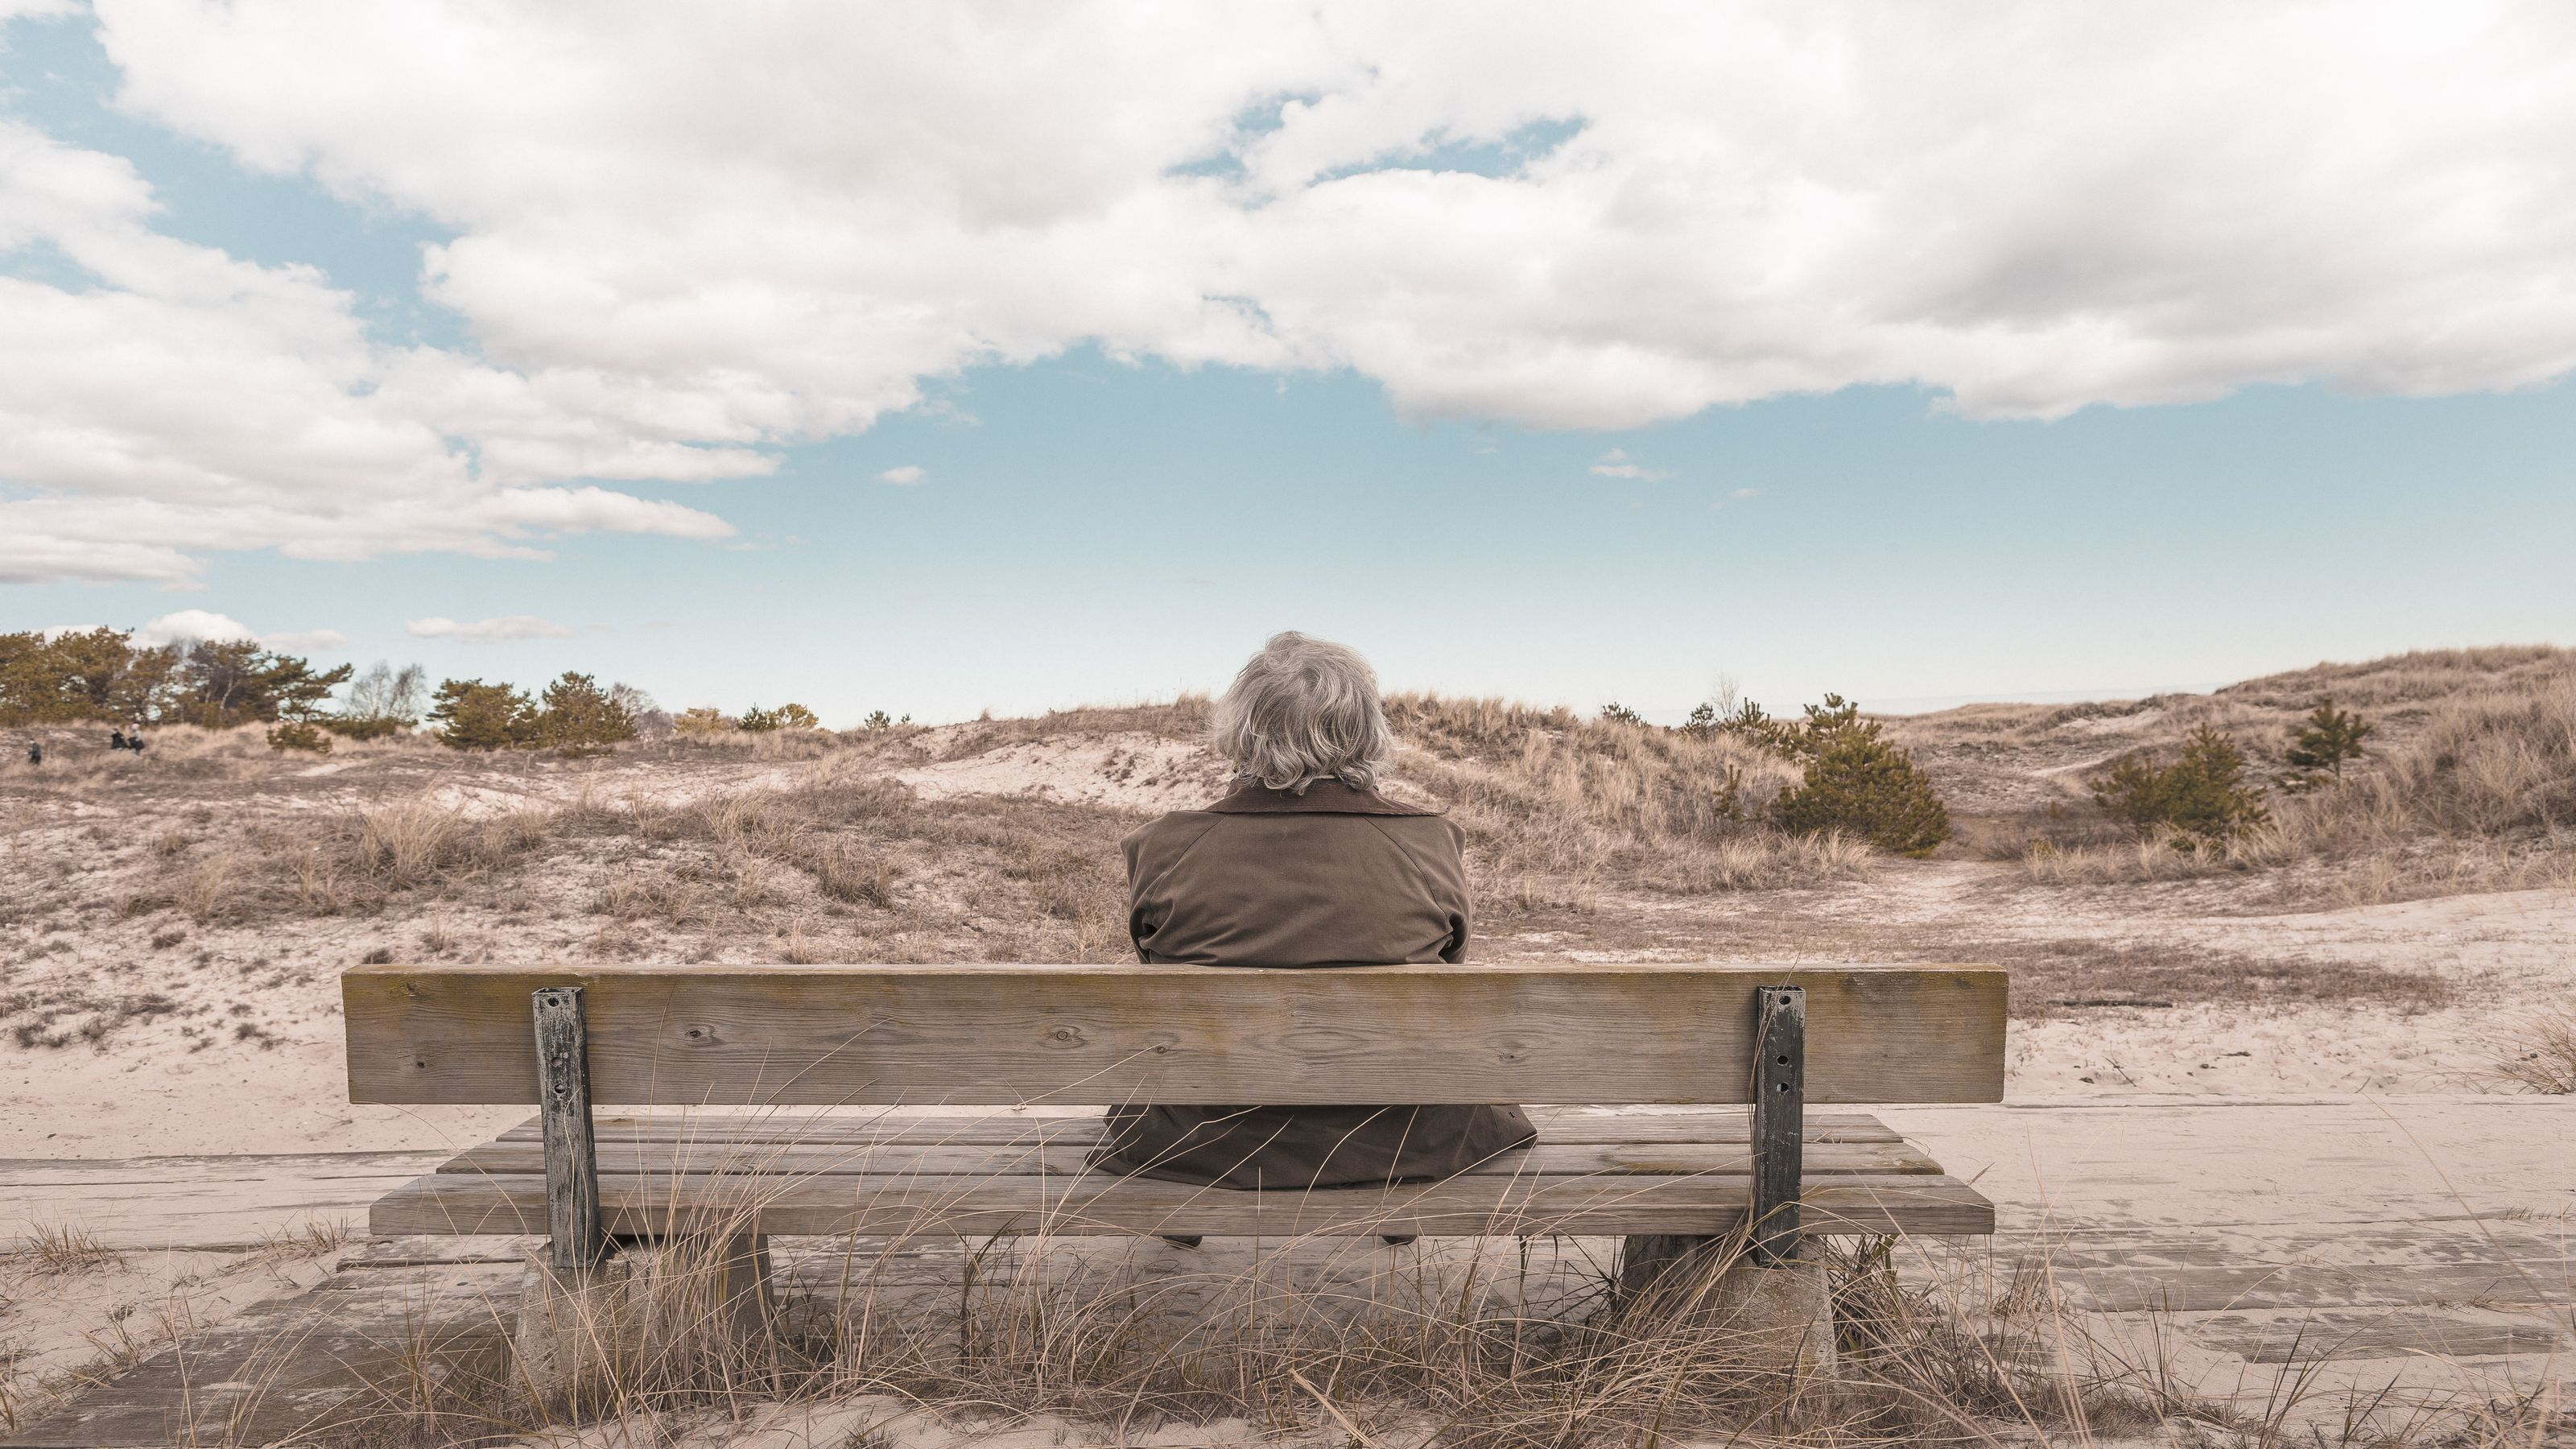 A man sits on a bench looking out over gently rolling hills.